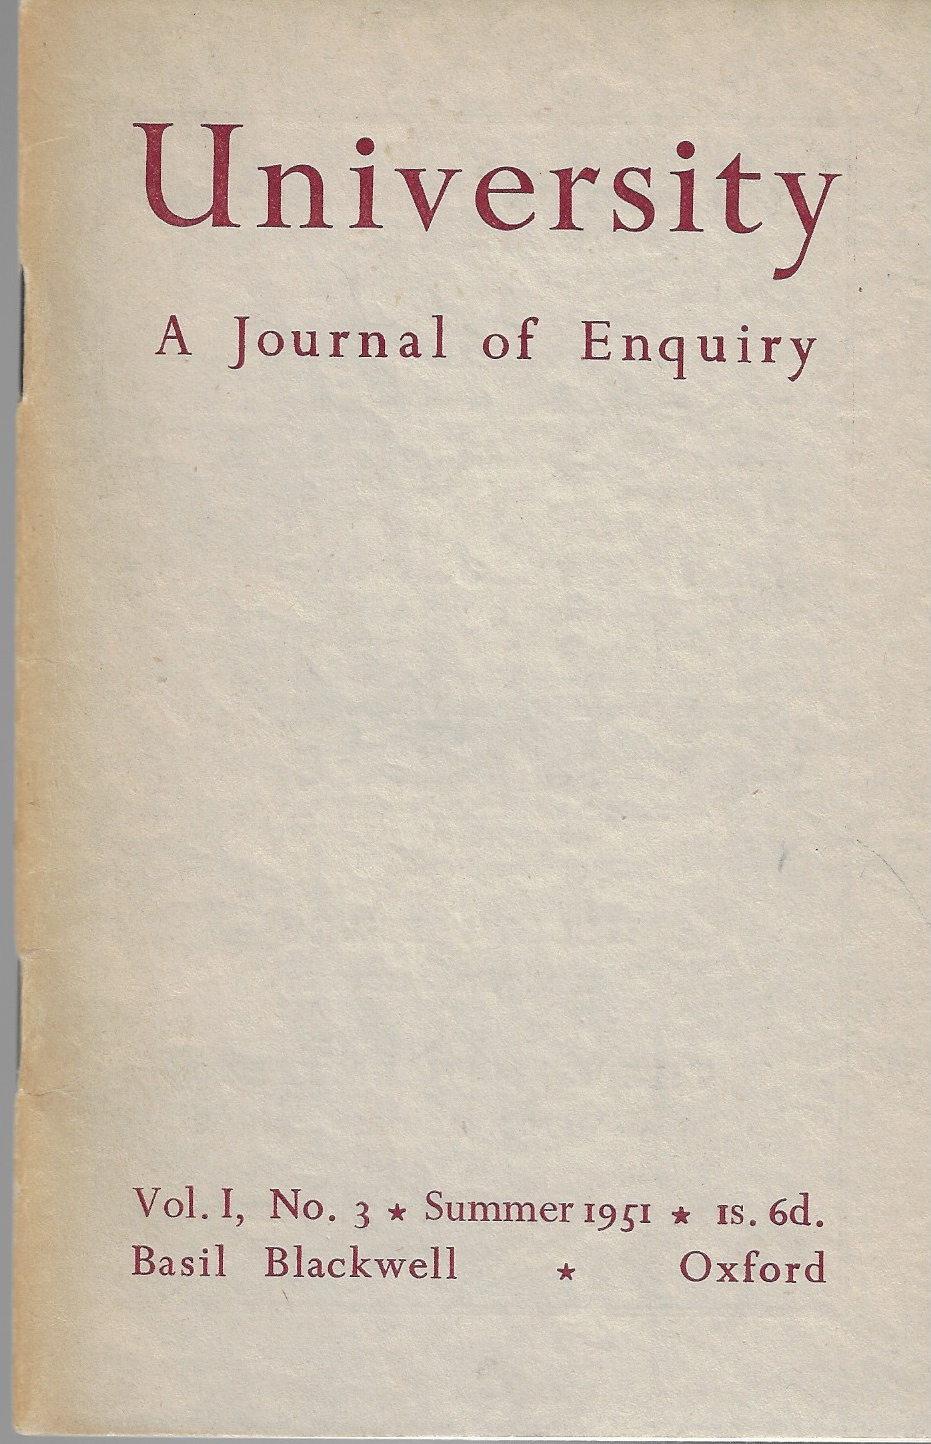 Image for University: a Journal of Enquiry. Vol. 1, No. 3